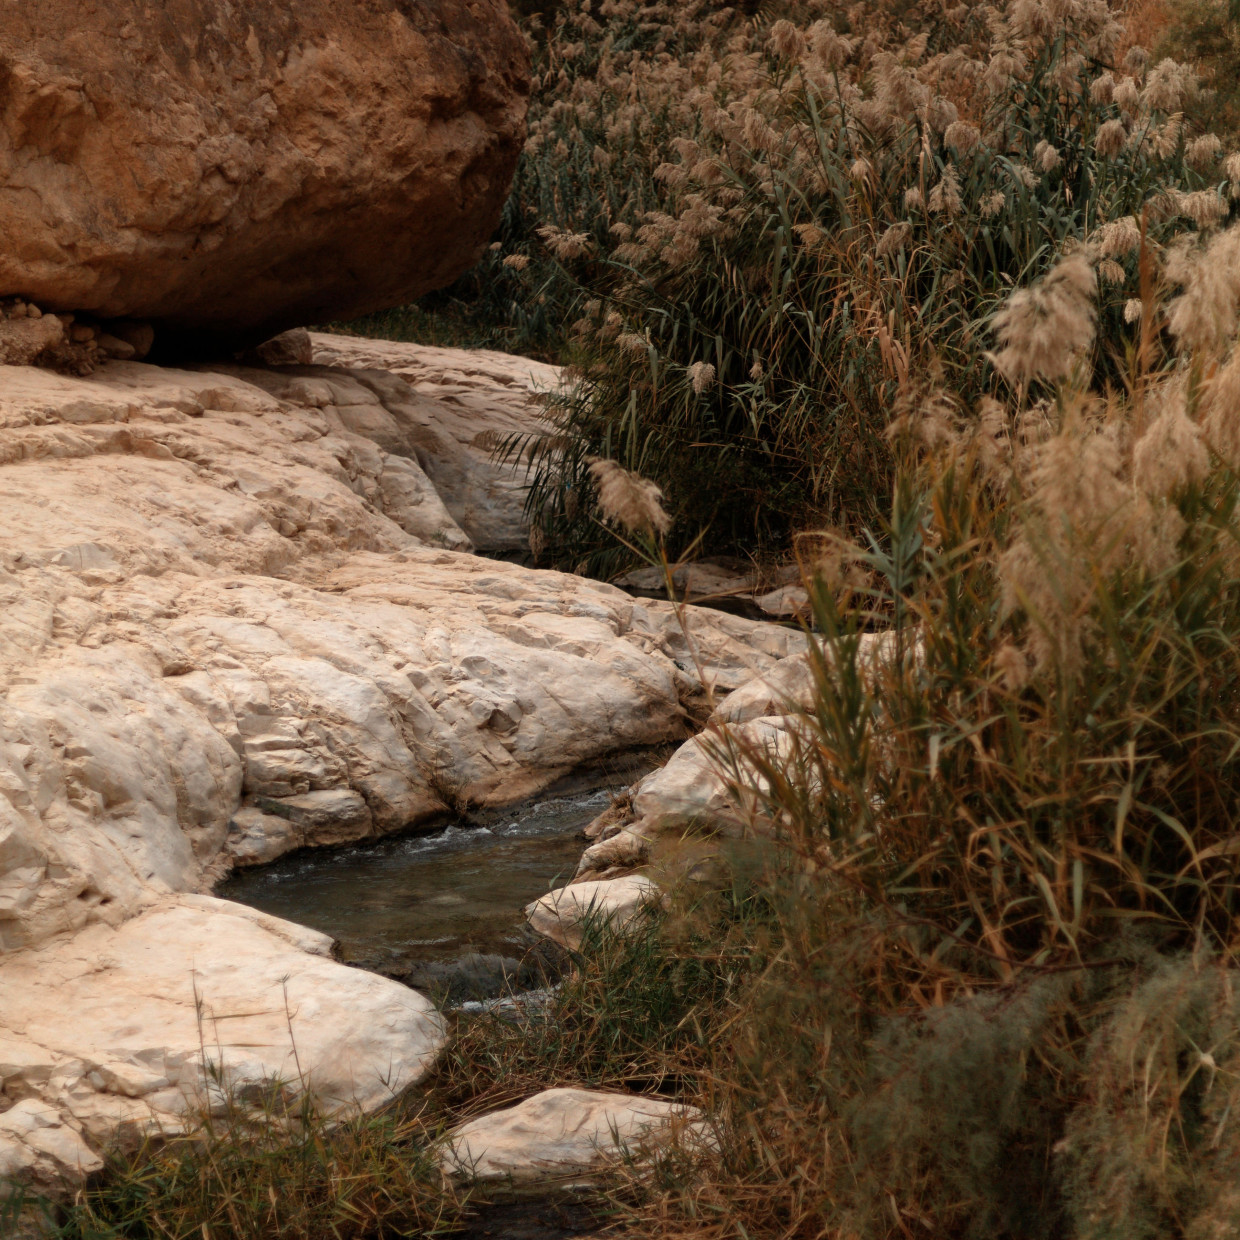 """Ilanit Illouz Wadi Qelt, in The Stony Light From the Louis Roederer Discovery Award section, Ilanit Illouz's """"Wadi Qelt,in the..."""